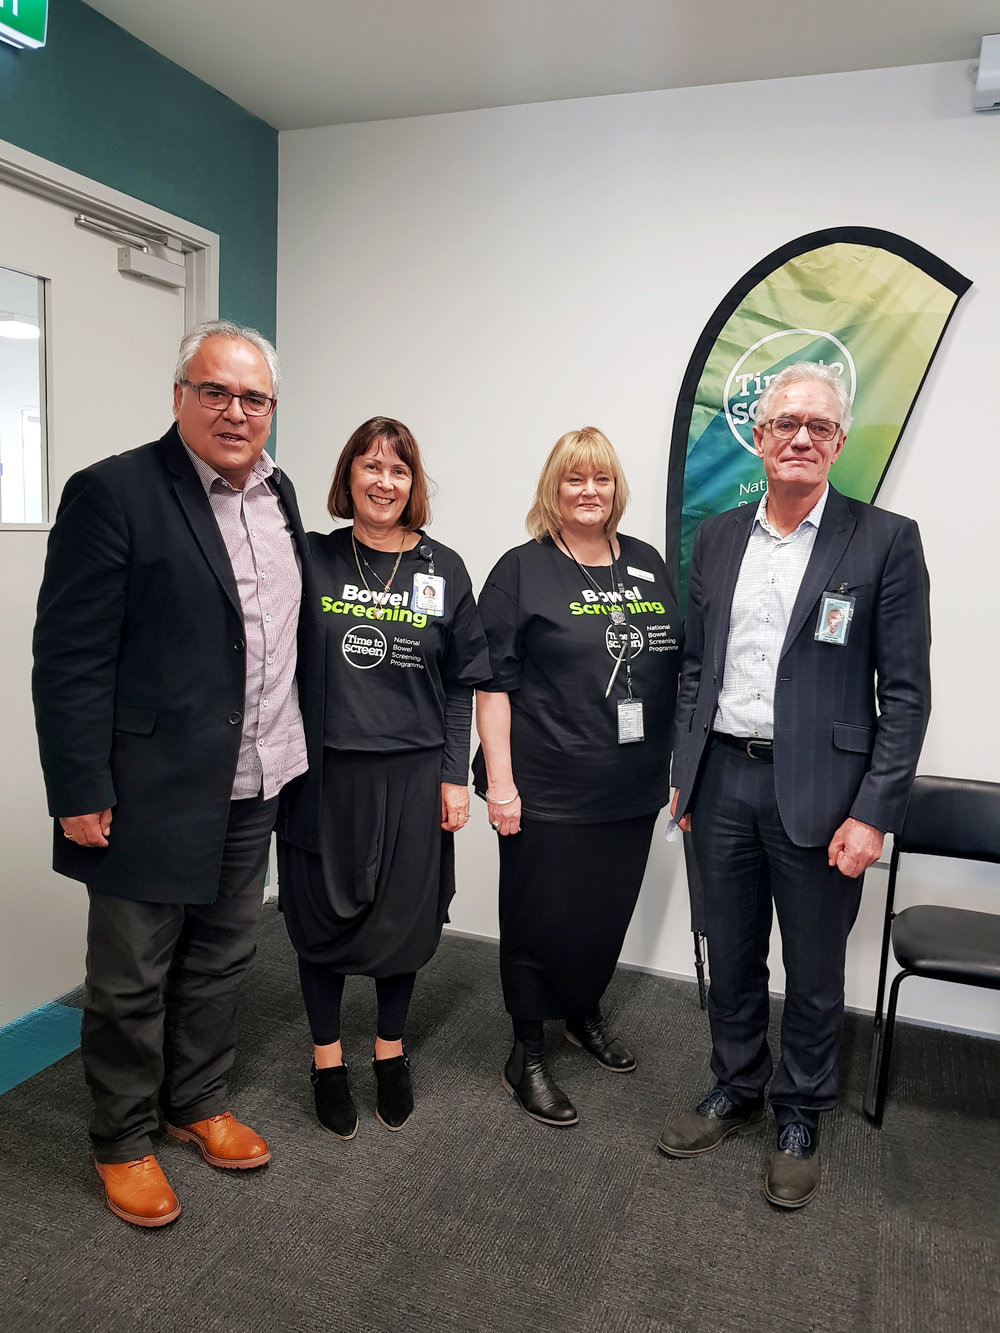 Pictured above at the launch are: Ricky Carr (Pūkenga Kaiwhakahaere – Wairau) Ms. Lexie O'Shea (GM Clinical NMH) Ms. Joyce Forsyth (NMH Bowel Screening Team) and Mr. Gerald Hope (NMH Board member)